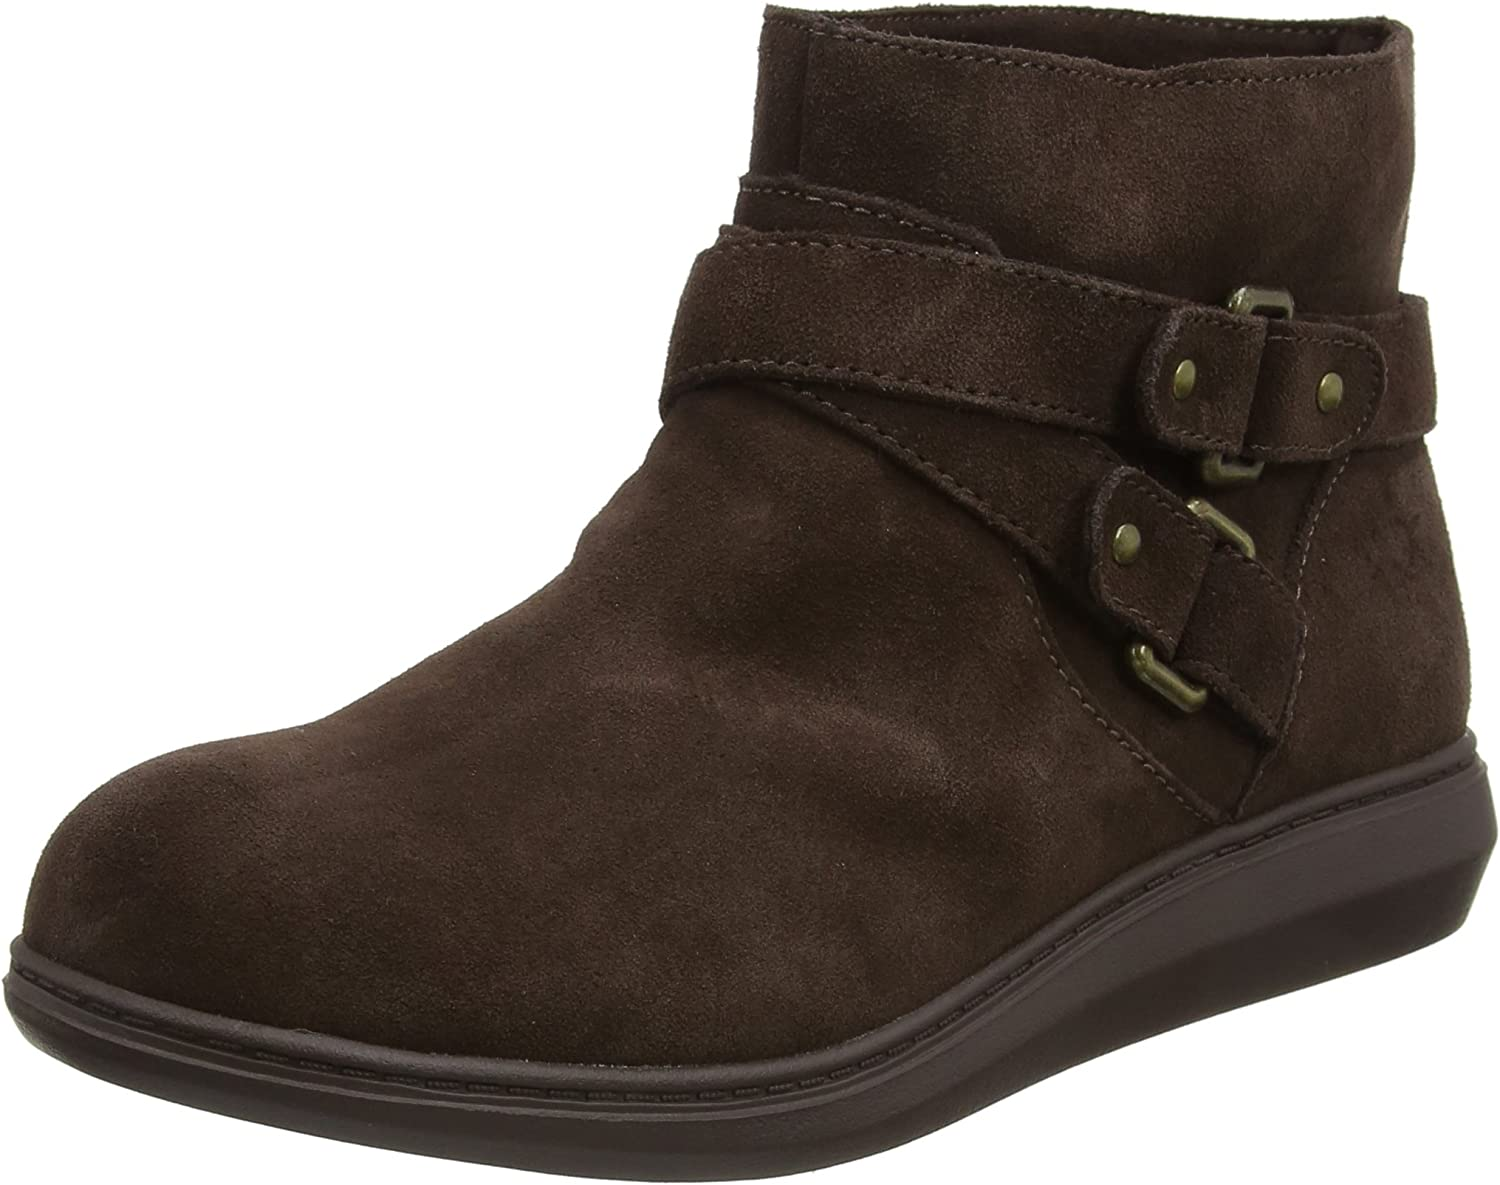 Rocket Dog Manilla Suede Womens Ankle Boots